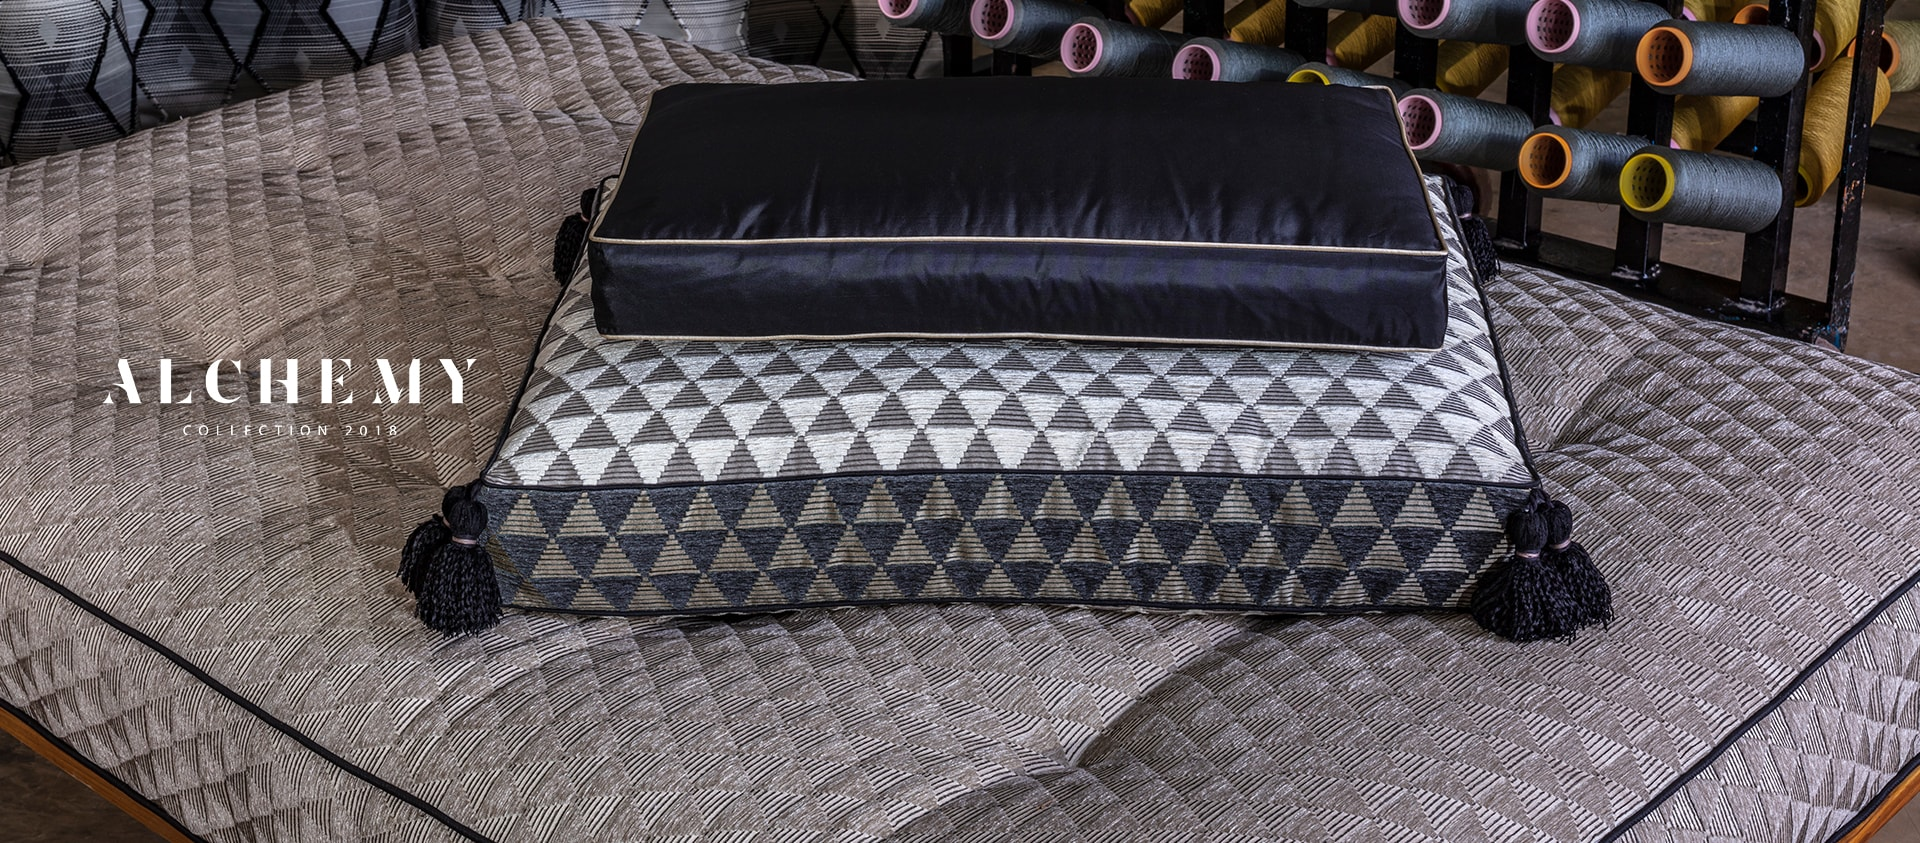 A global luxury home textile brand designed for the discerning